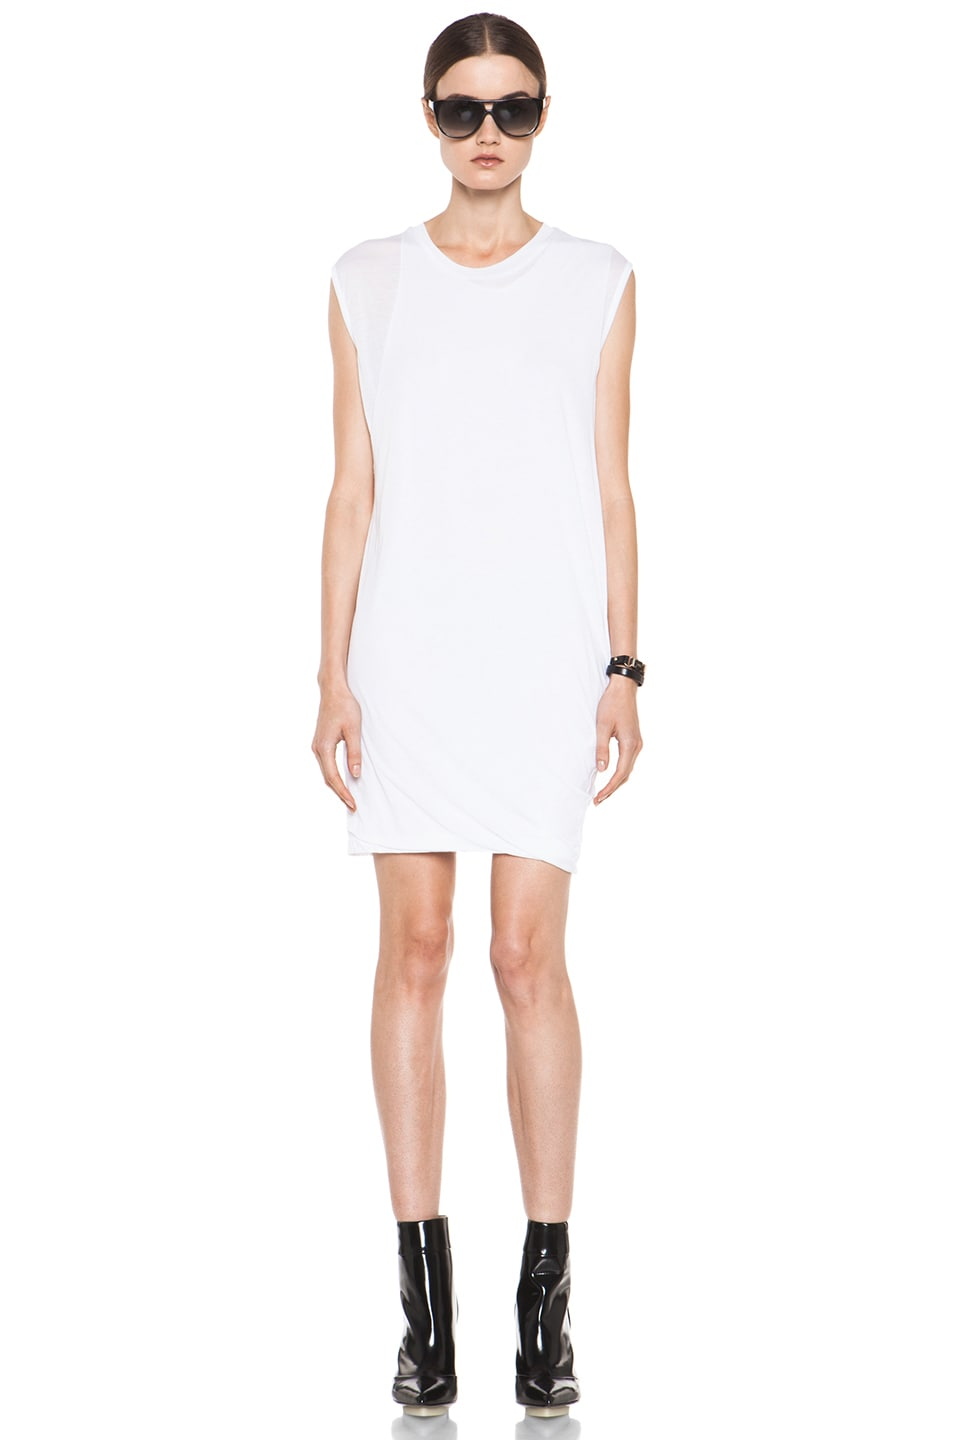 Image 1 of 3.1 phillip lim Distressed Double Layered Dress in Optic White